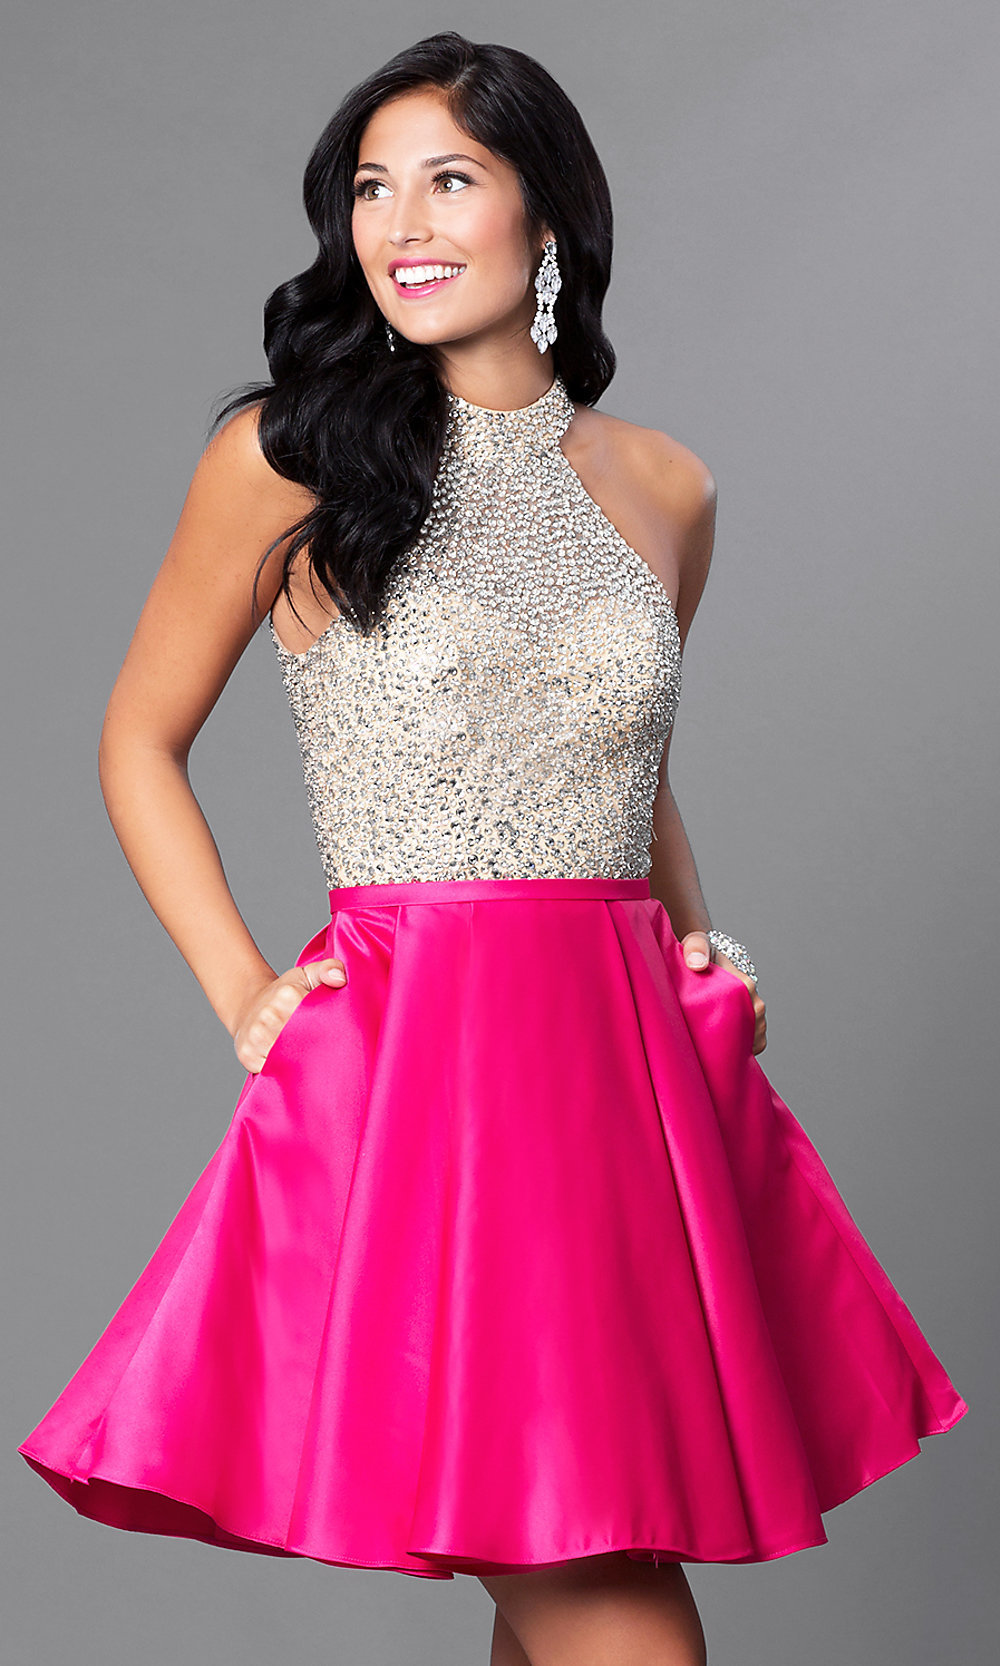 Celebrity Prom Dresses Sexy Evening Gowns Promgirl Cd 1550